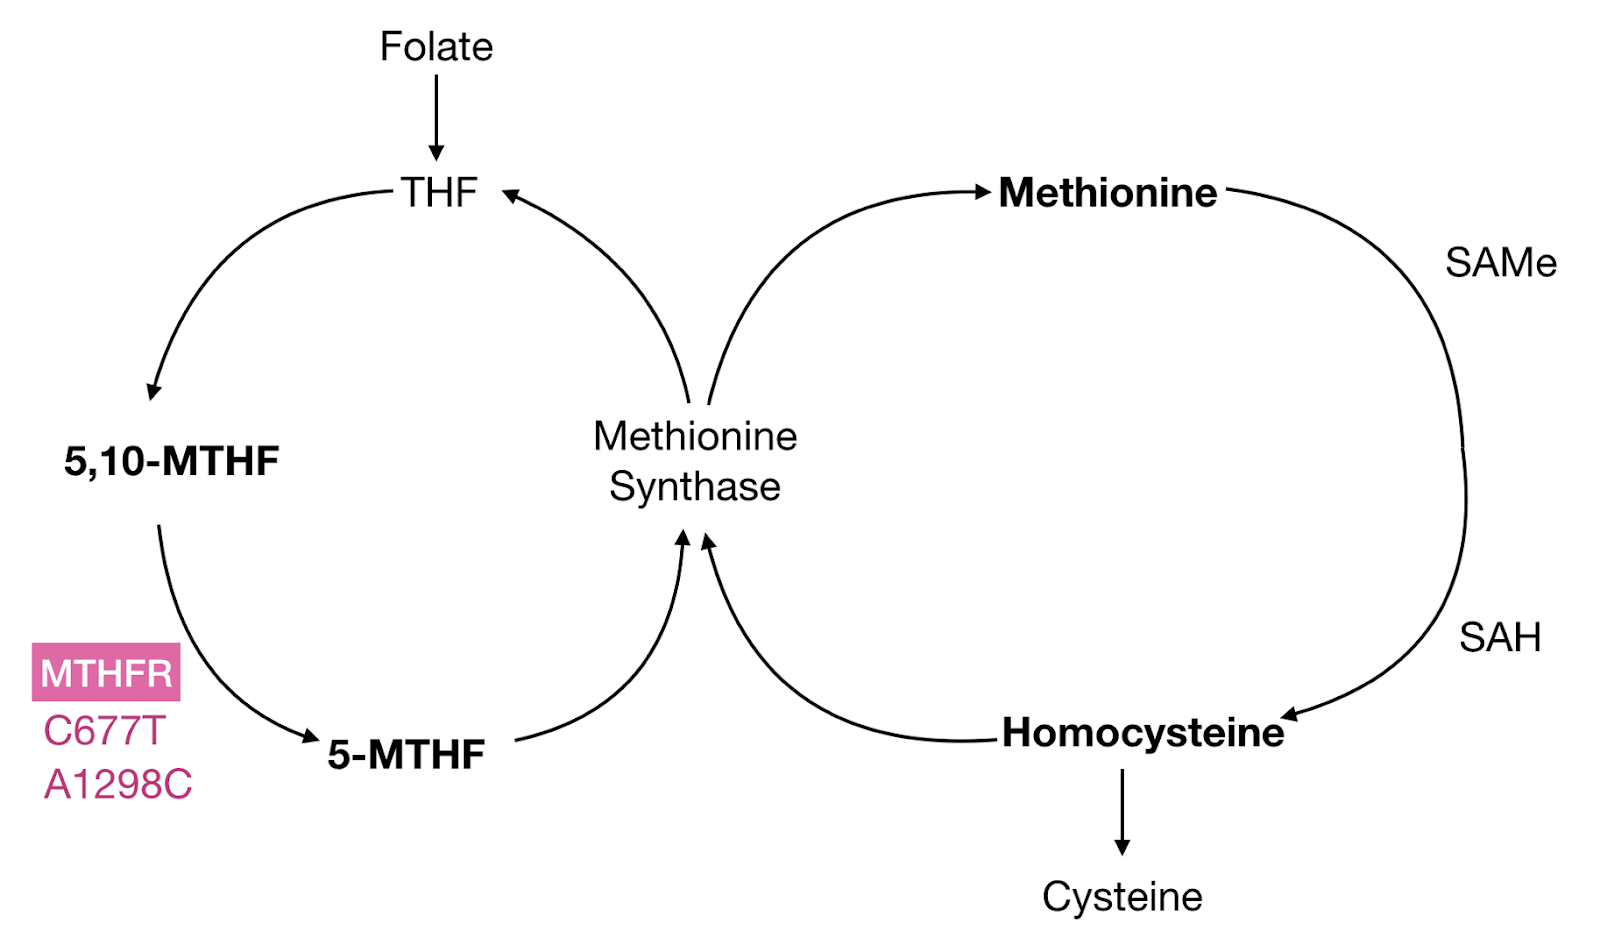 MTHFR produces 5-MTHF, the primary biologically active form of folate.